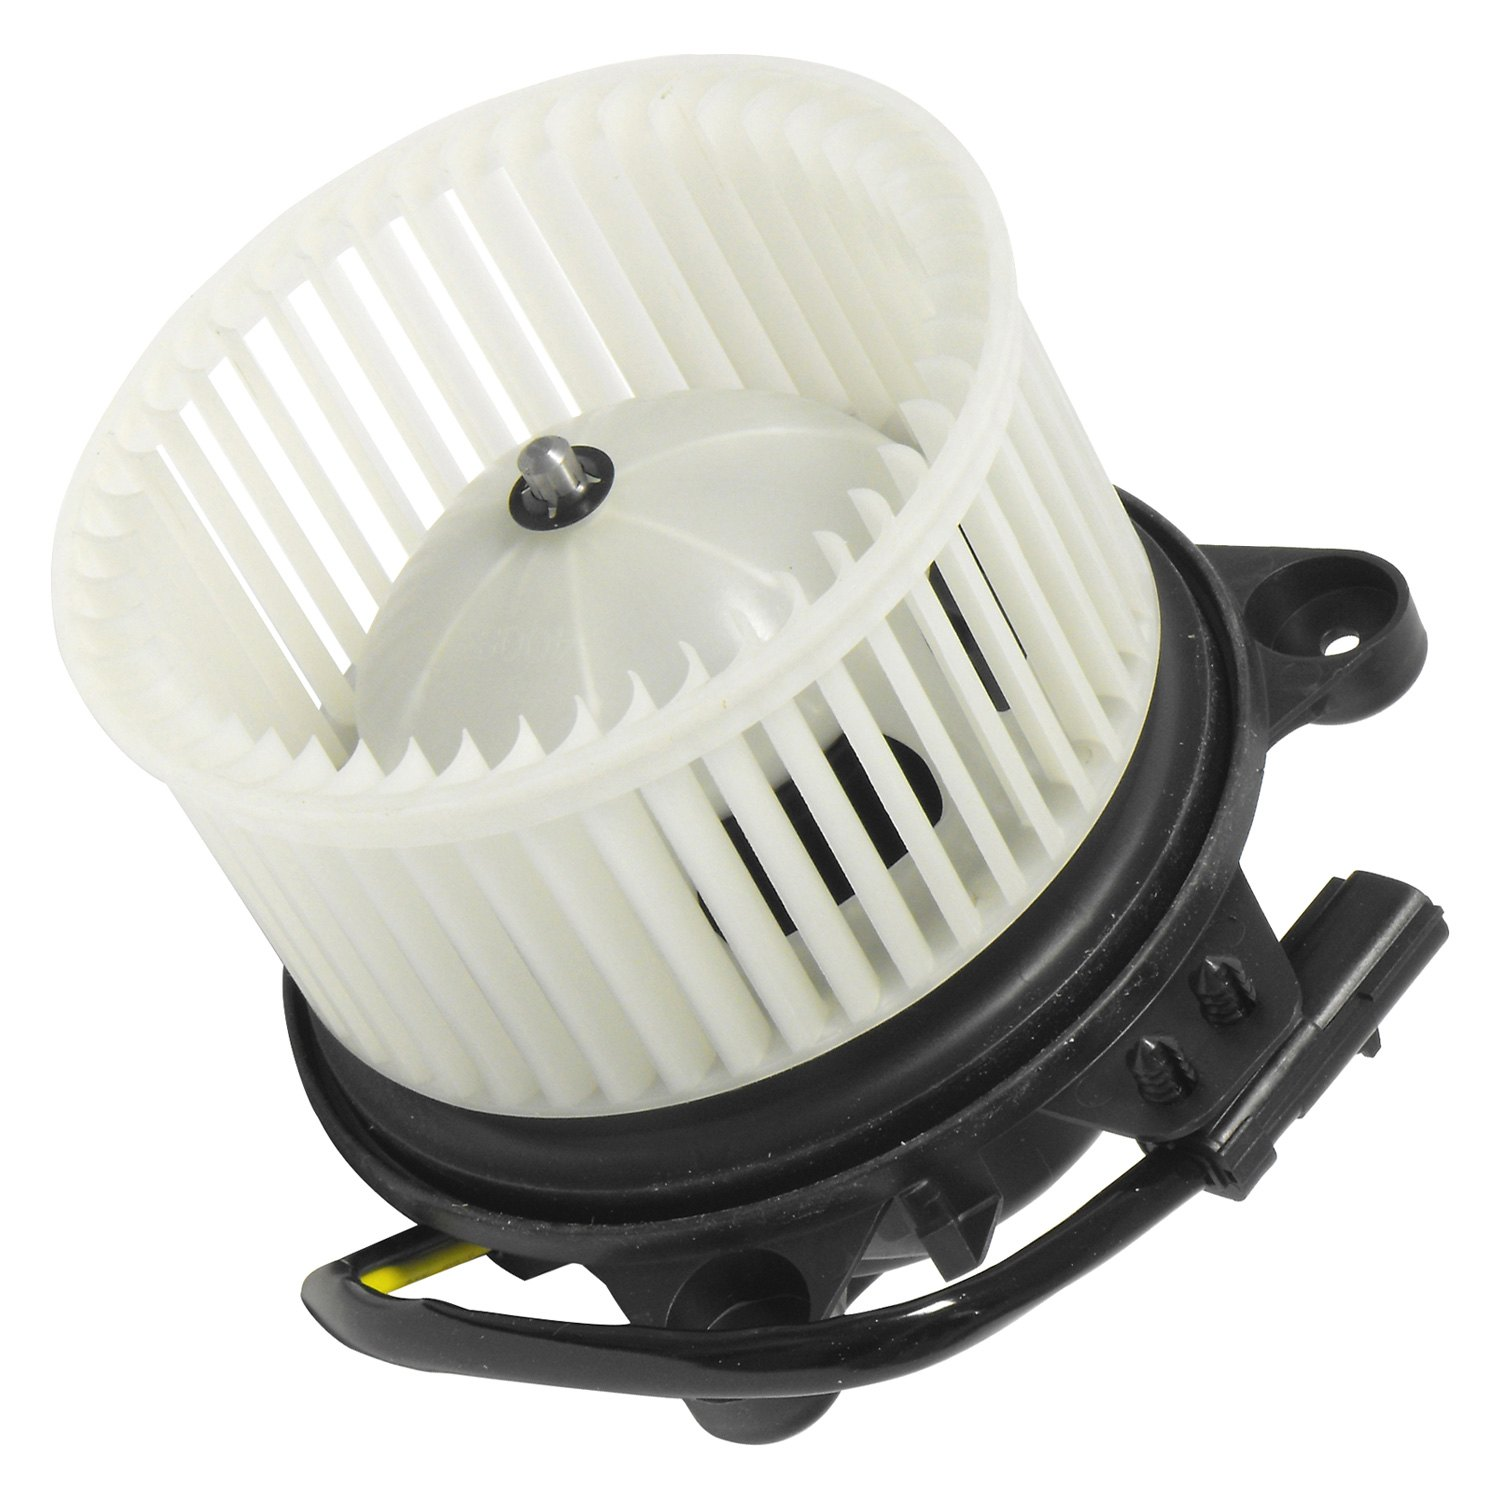 Universal air conditioner bm9200 hvac blower motor for Car ac blower motor